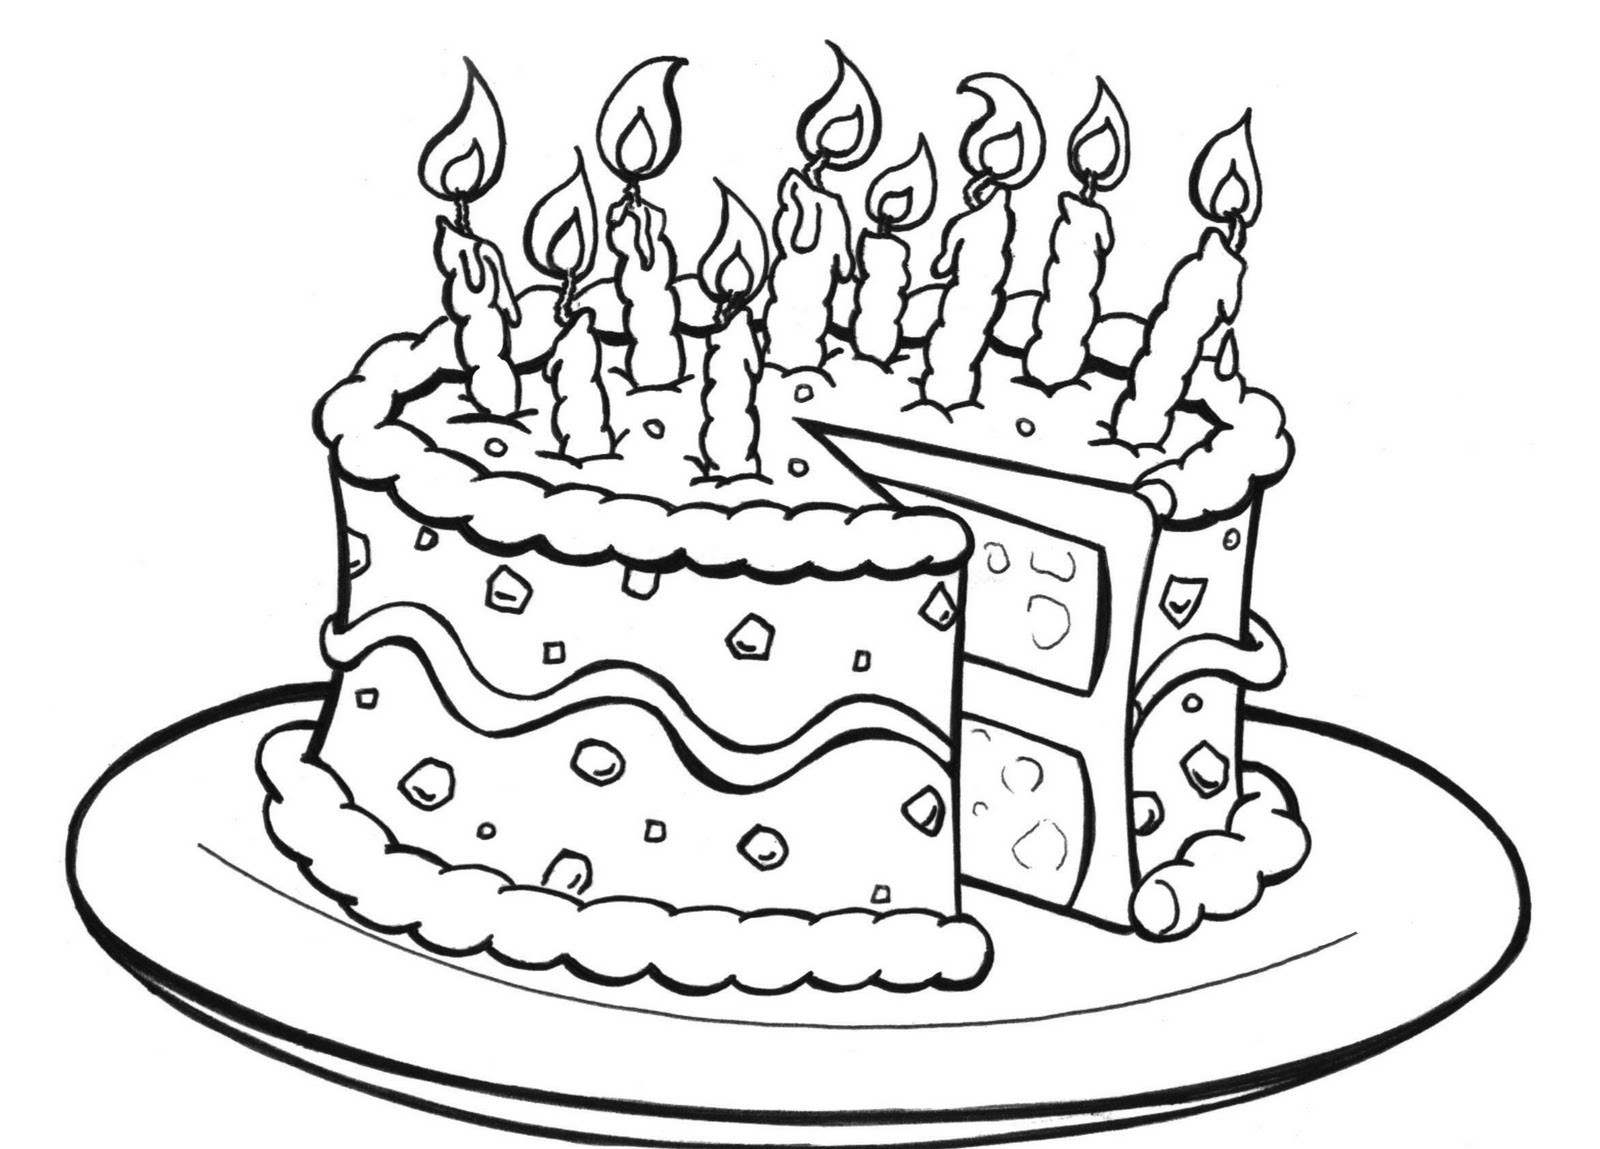 colouring pages for birthday ; Birthday-Cake-Coloring-Pages